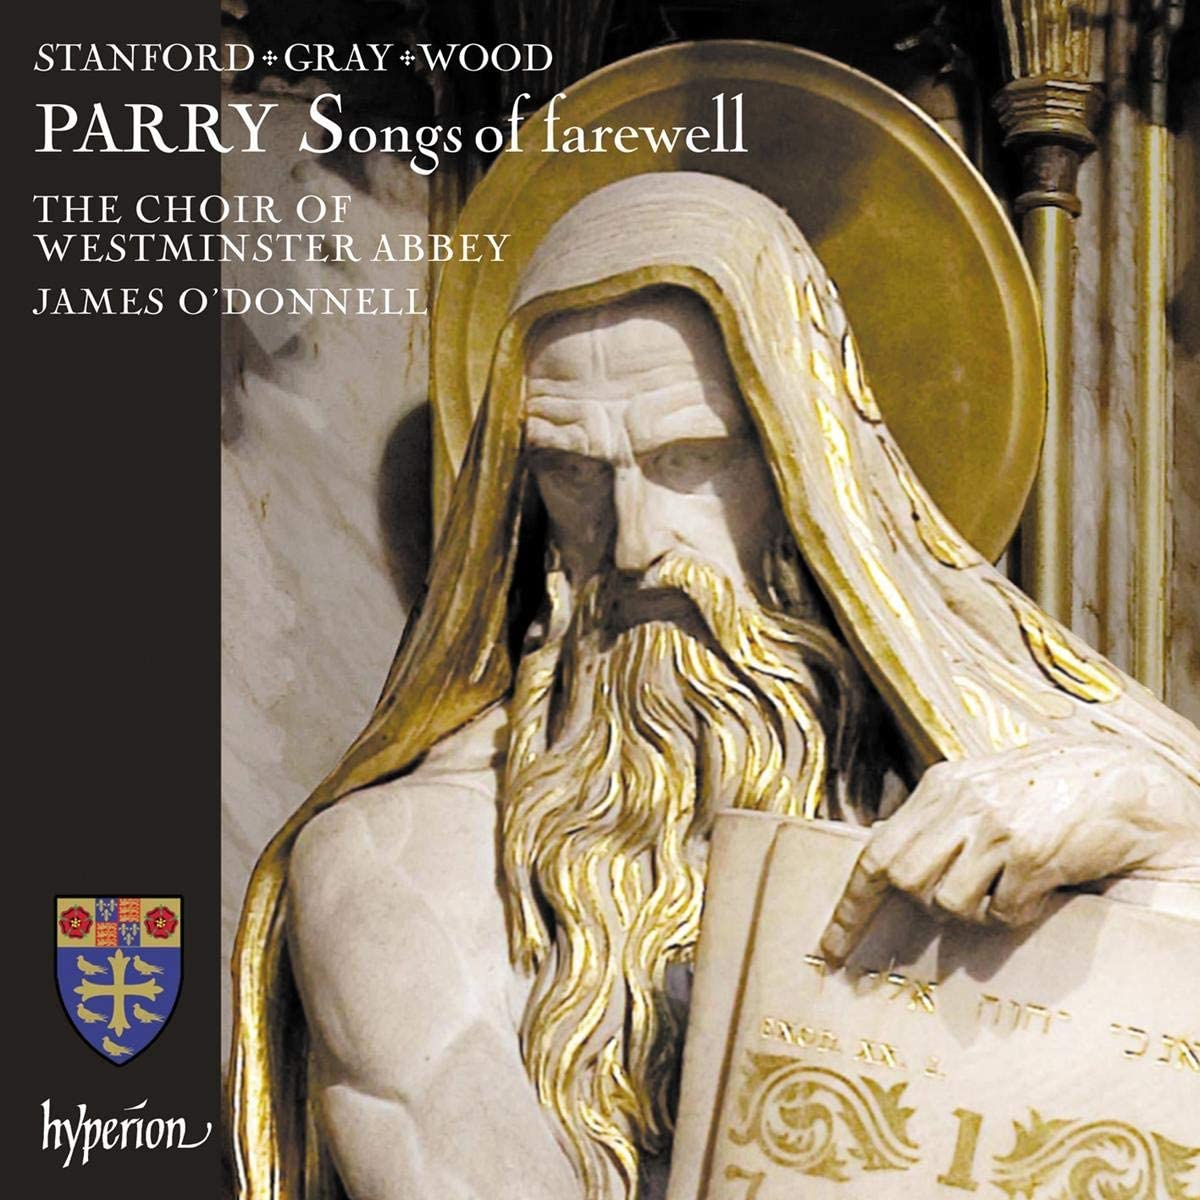 Review of PARRY Songs of Farewell (Westminster Abbey Choir)